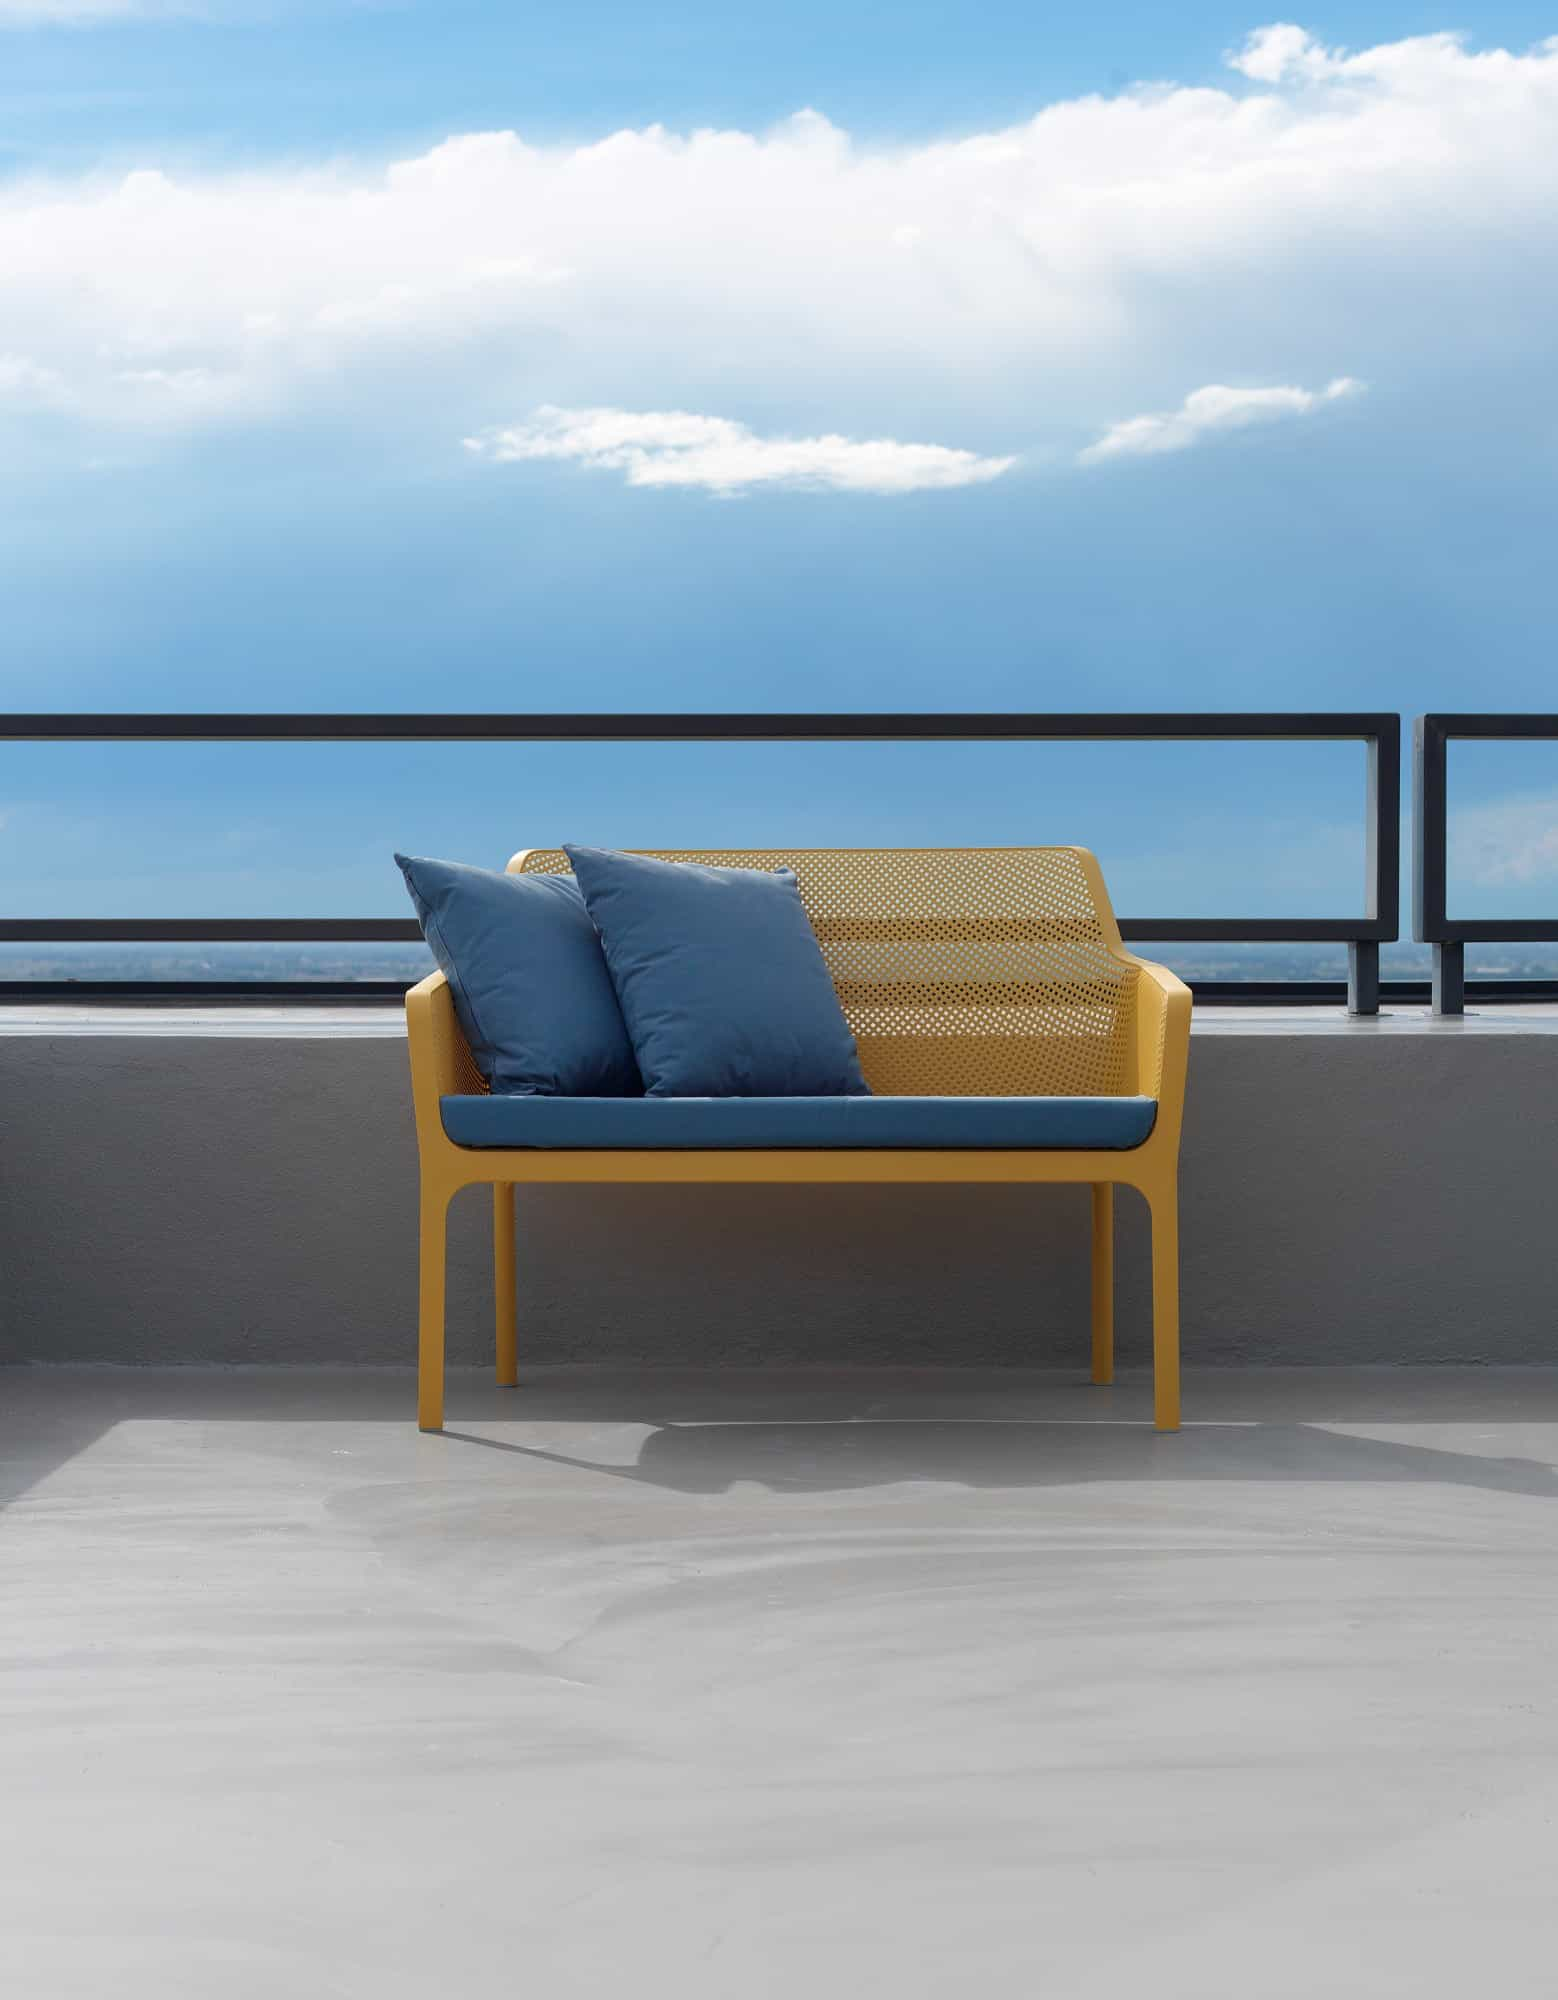 Net outdoor furniture - sofa by Nardi in yellow